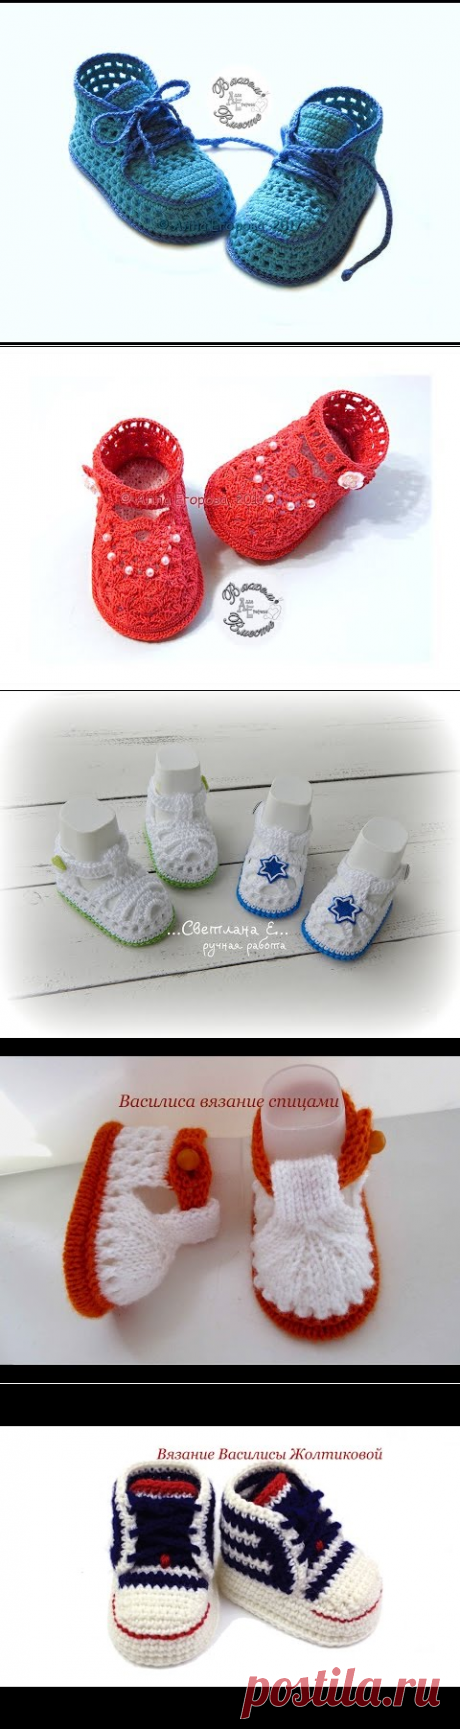 Bootee gym shoes summer a hook\/\/Sneakers booties crochet summer\/\/-YouTube